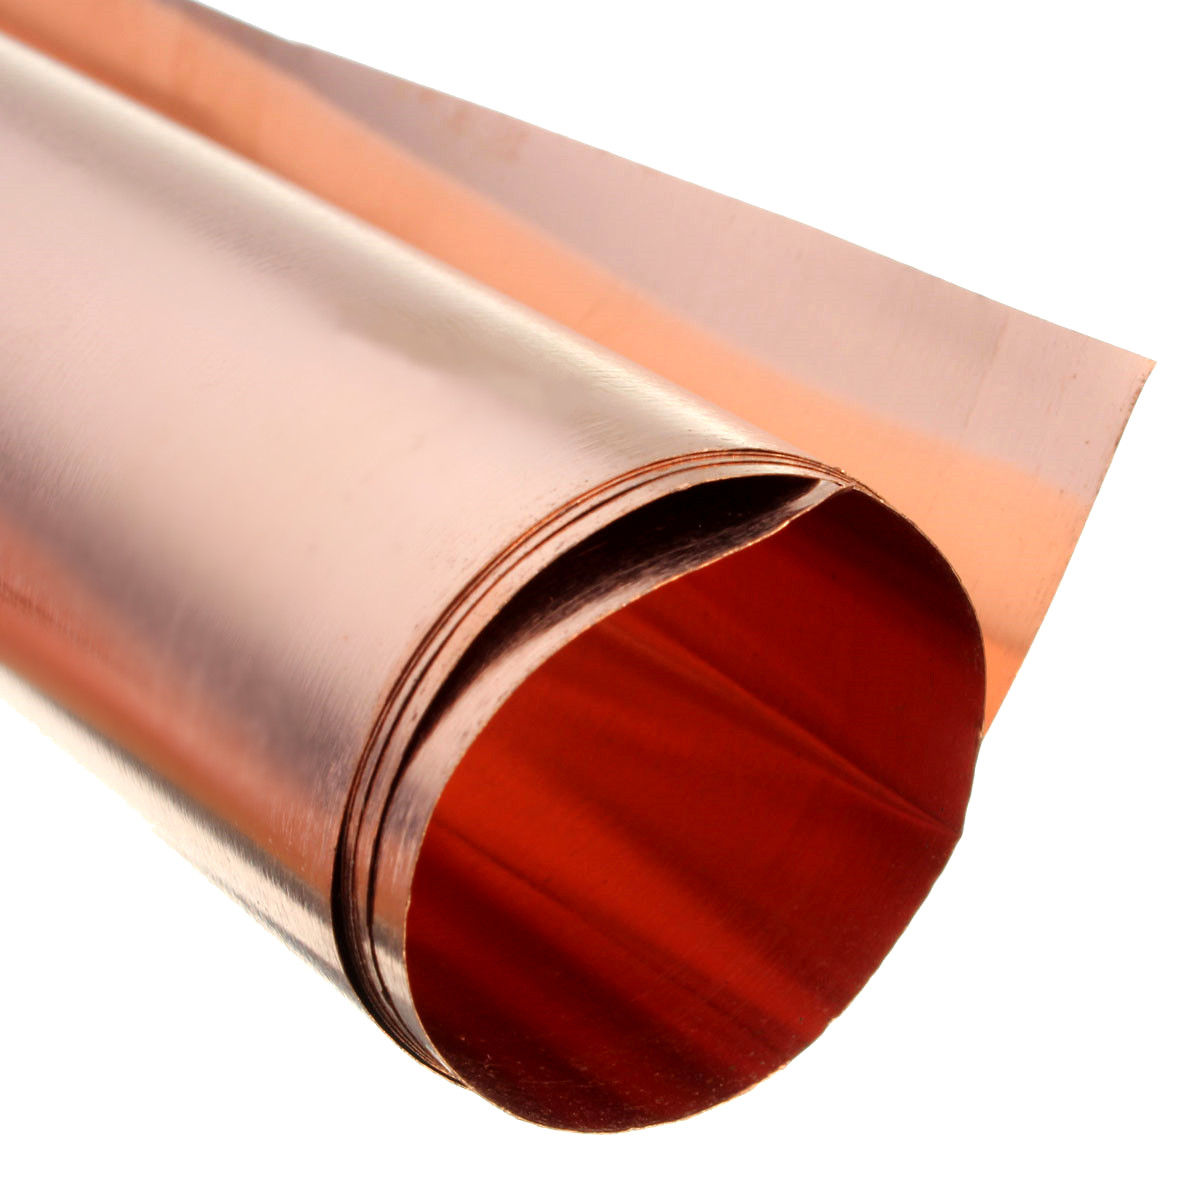 1pcs 99.9/% Pure Copper Cu Metal Sheet Plate 0.8mm*100mm*100mm #E308